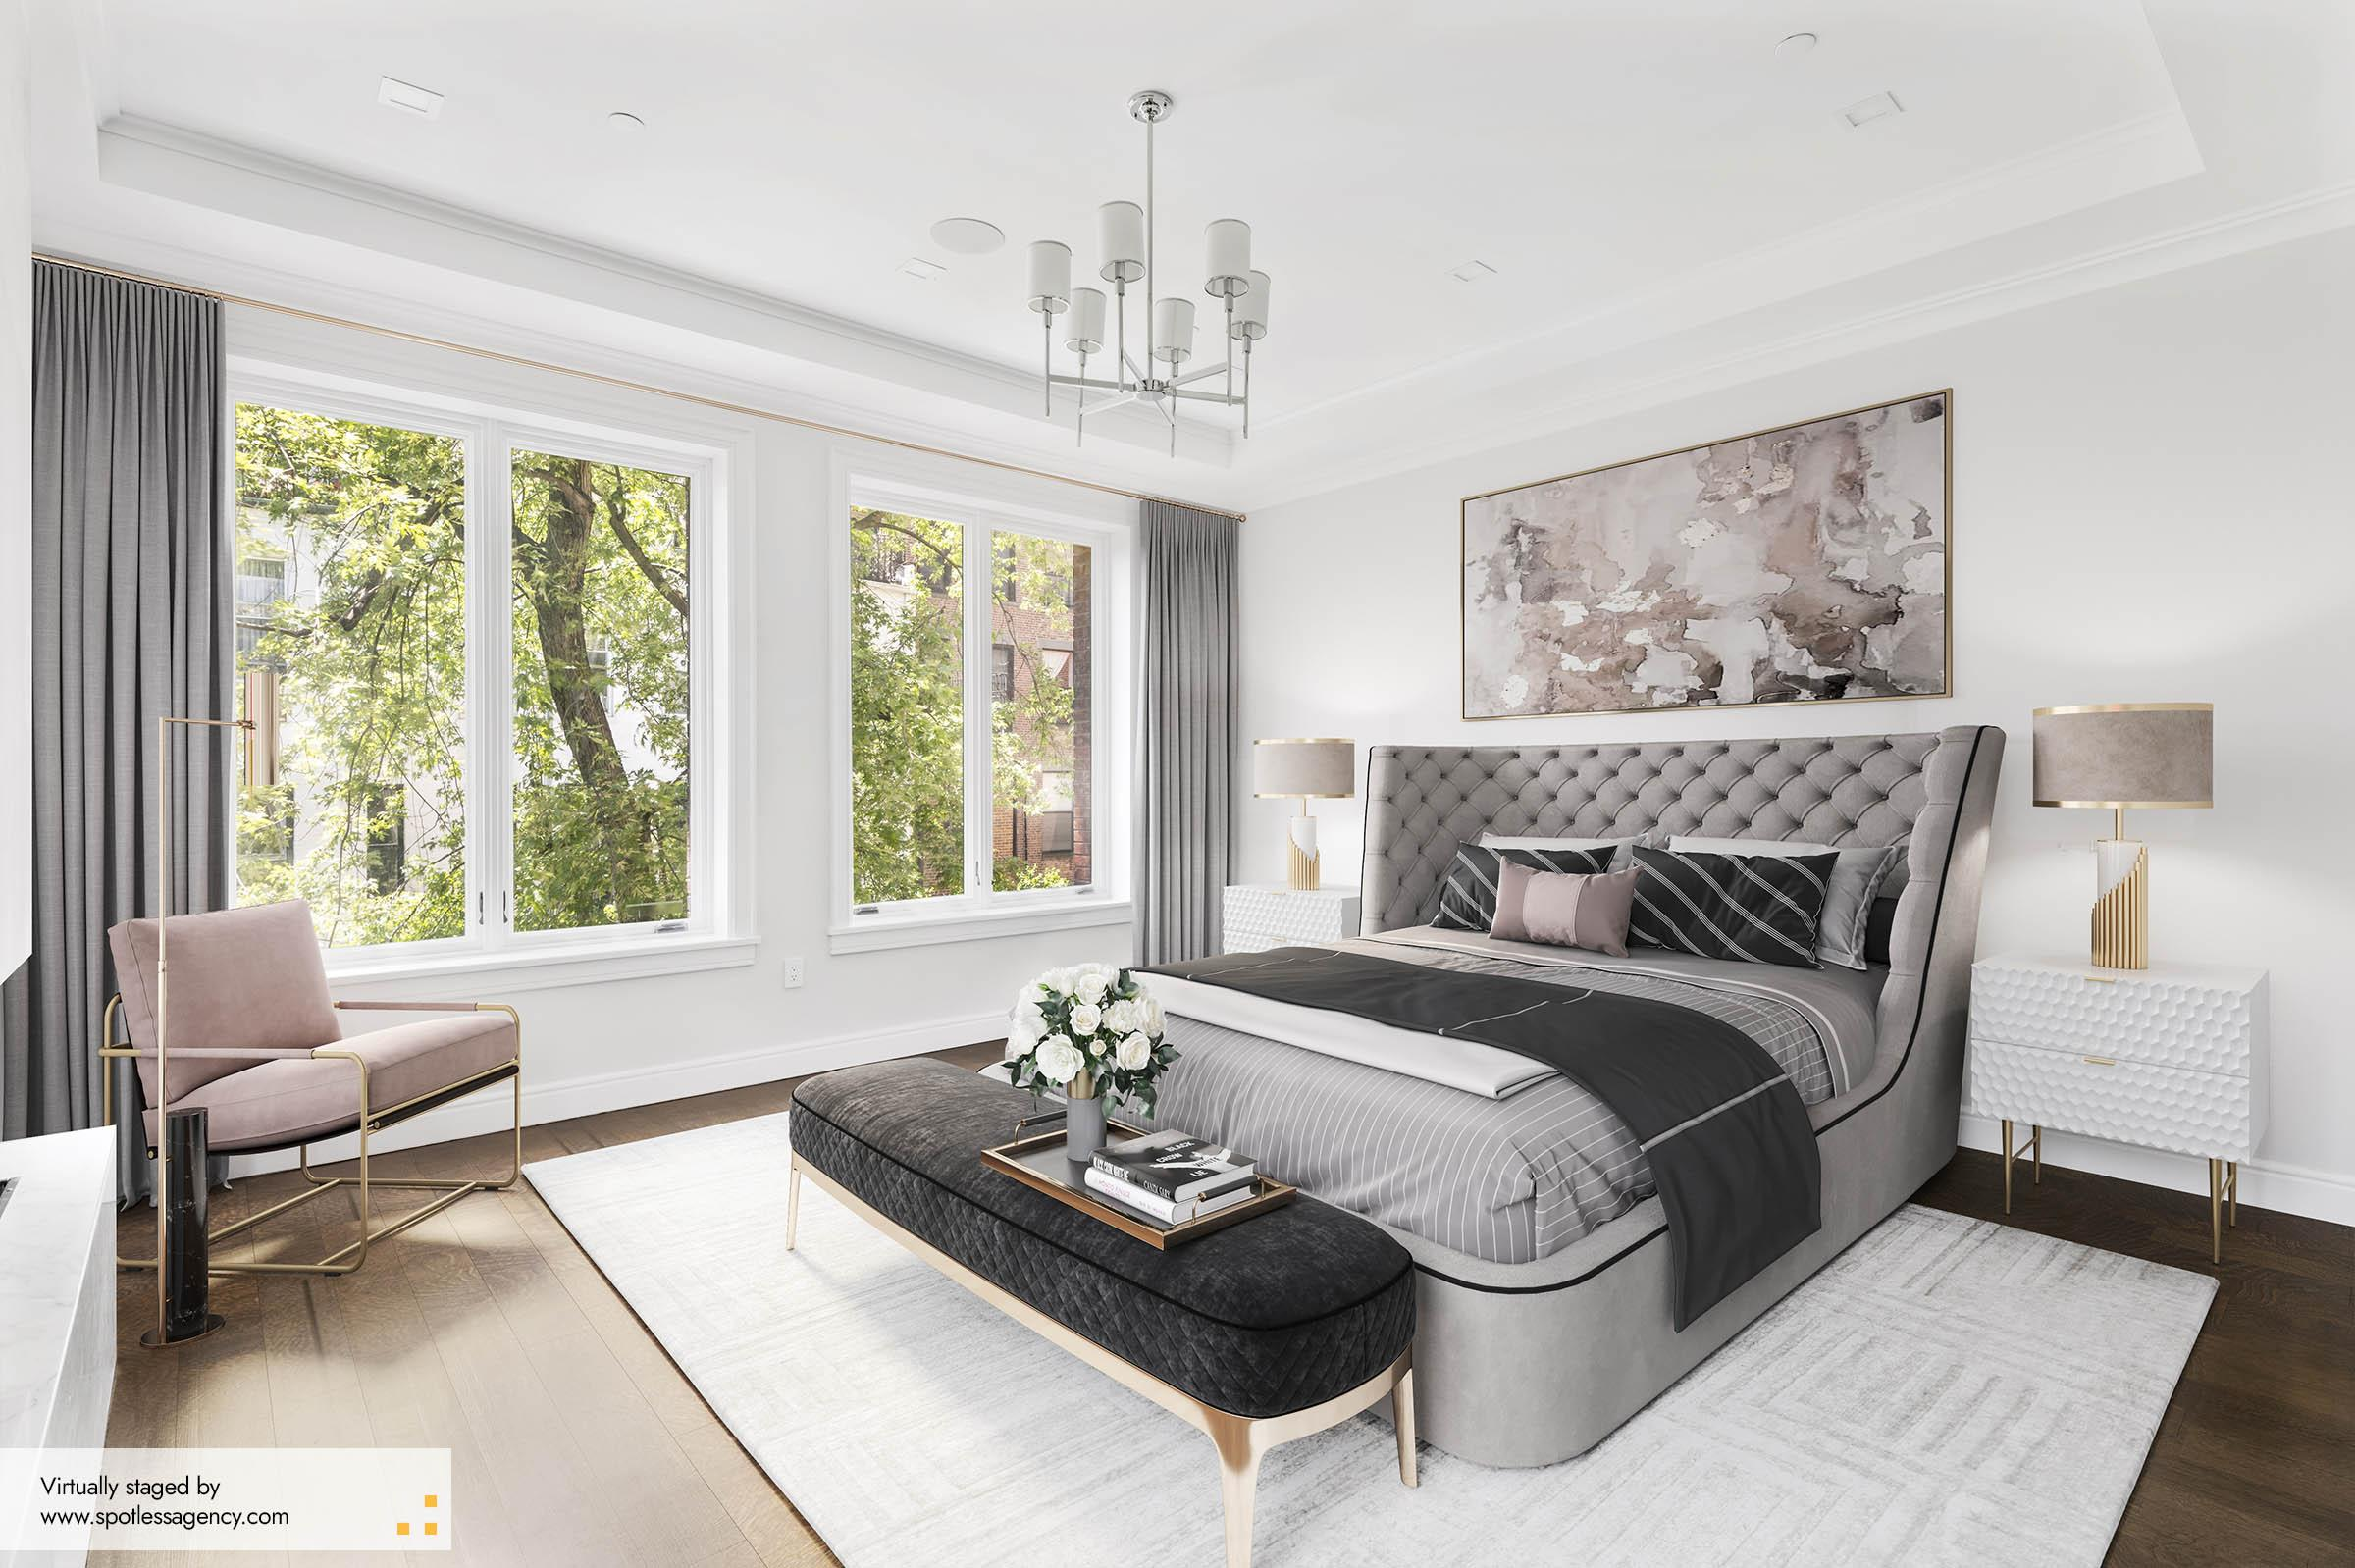 Second-Bedroom Virtual Staging